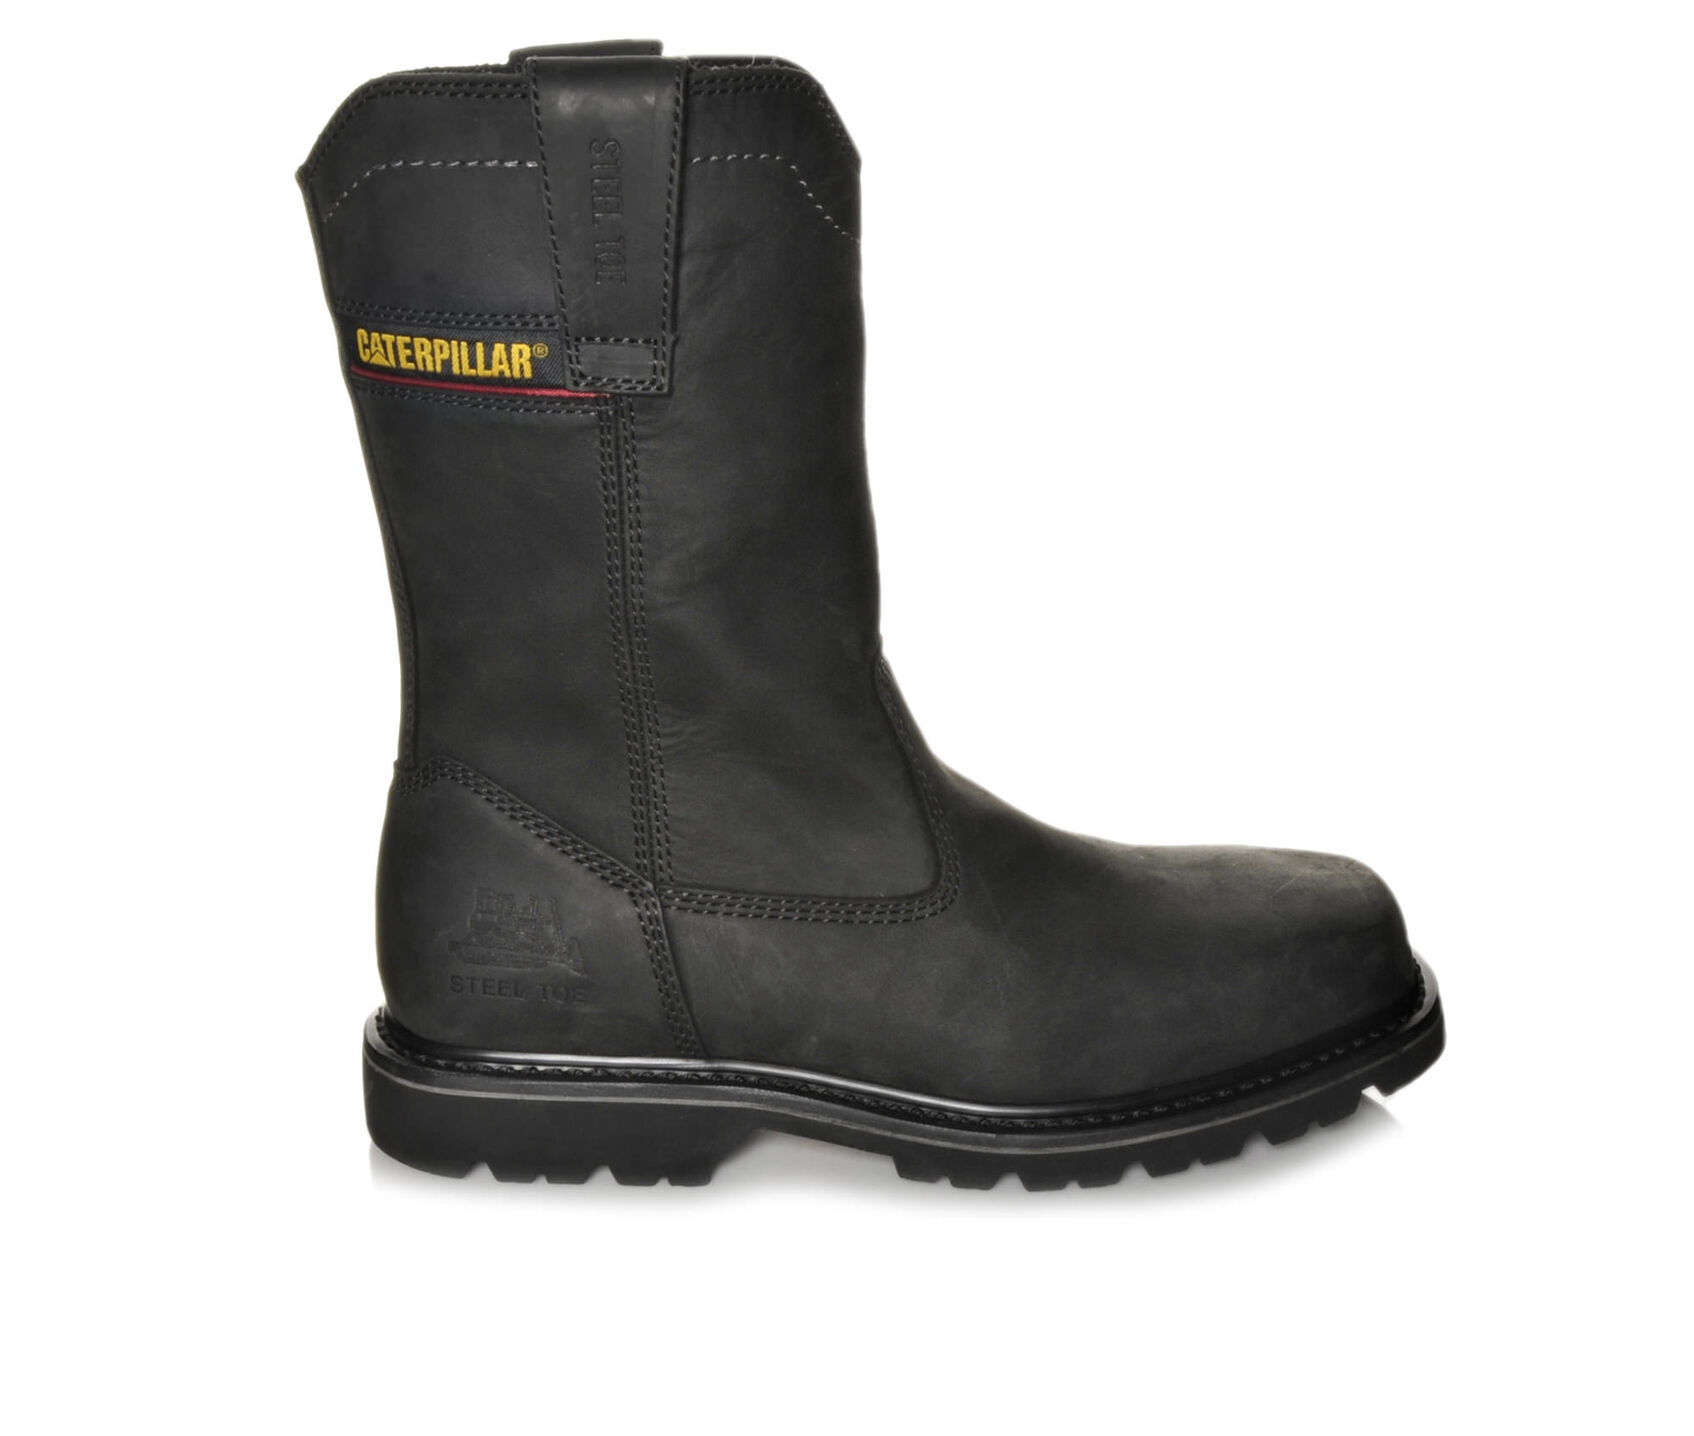 wellston guys Cat wellston empowering workers to shape the world around them, the welston is a square toe version of the classic wellington style with pull tabs for easy pull on and signature caterpillar logo.